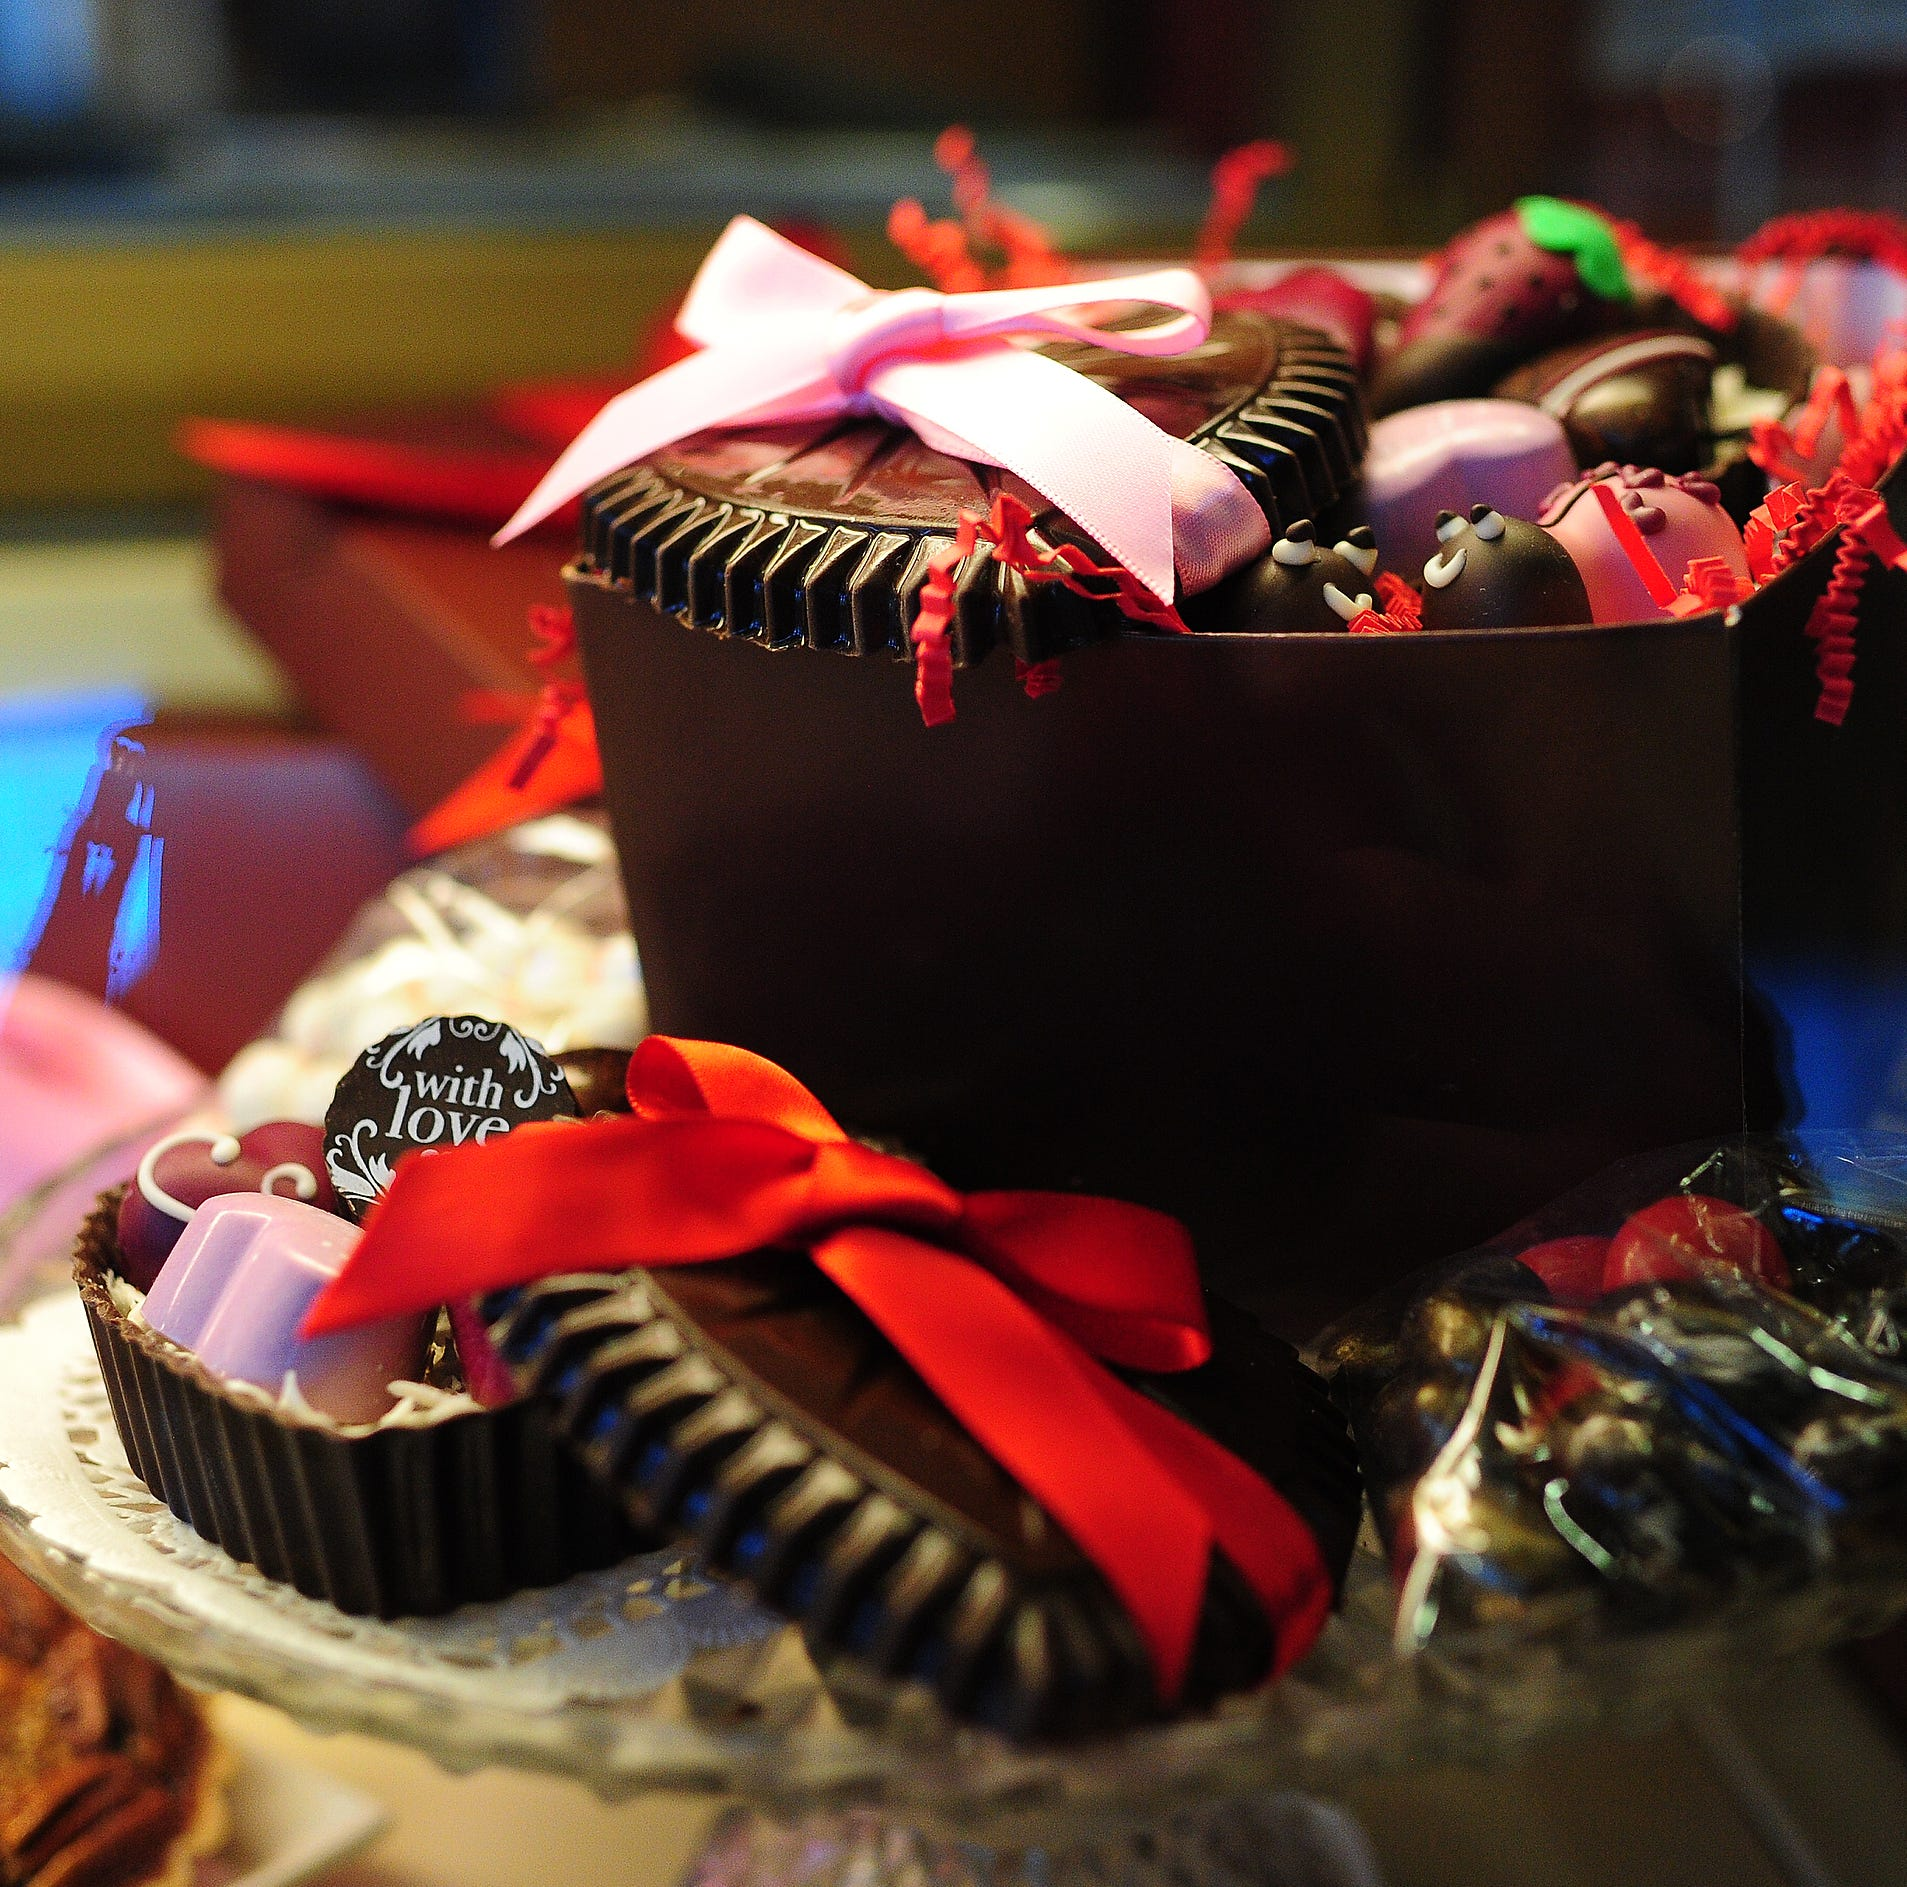 In a crunch for Valentine's Day? Here are a few fun options around Lafayette